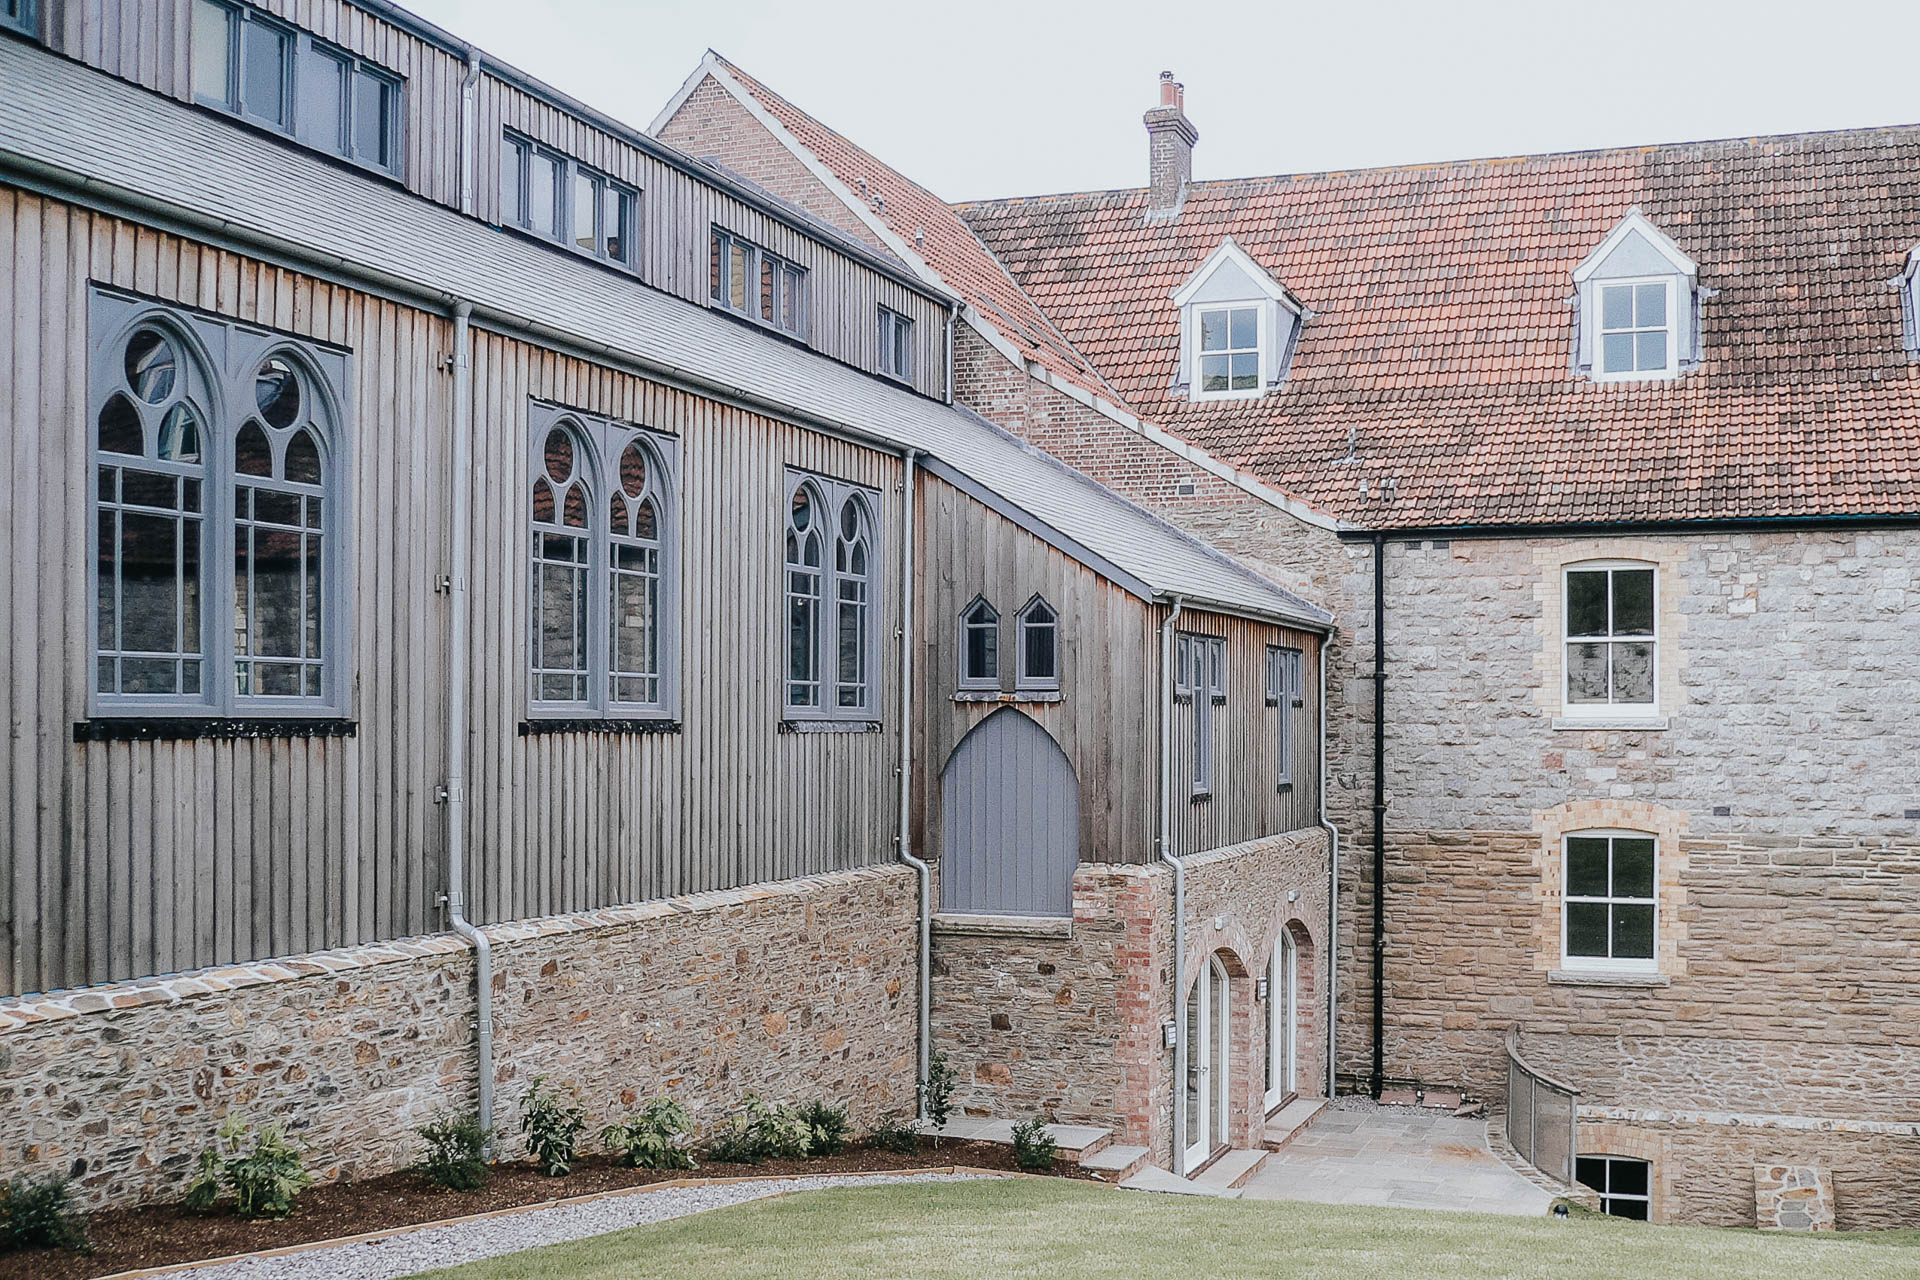 timber framed chapel in a contemporary listed building conversion